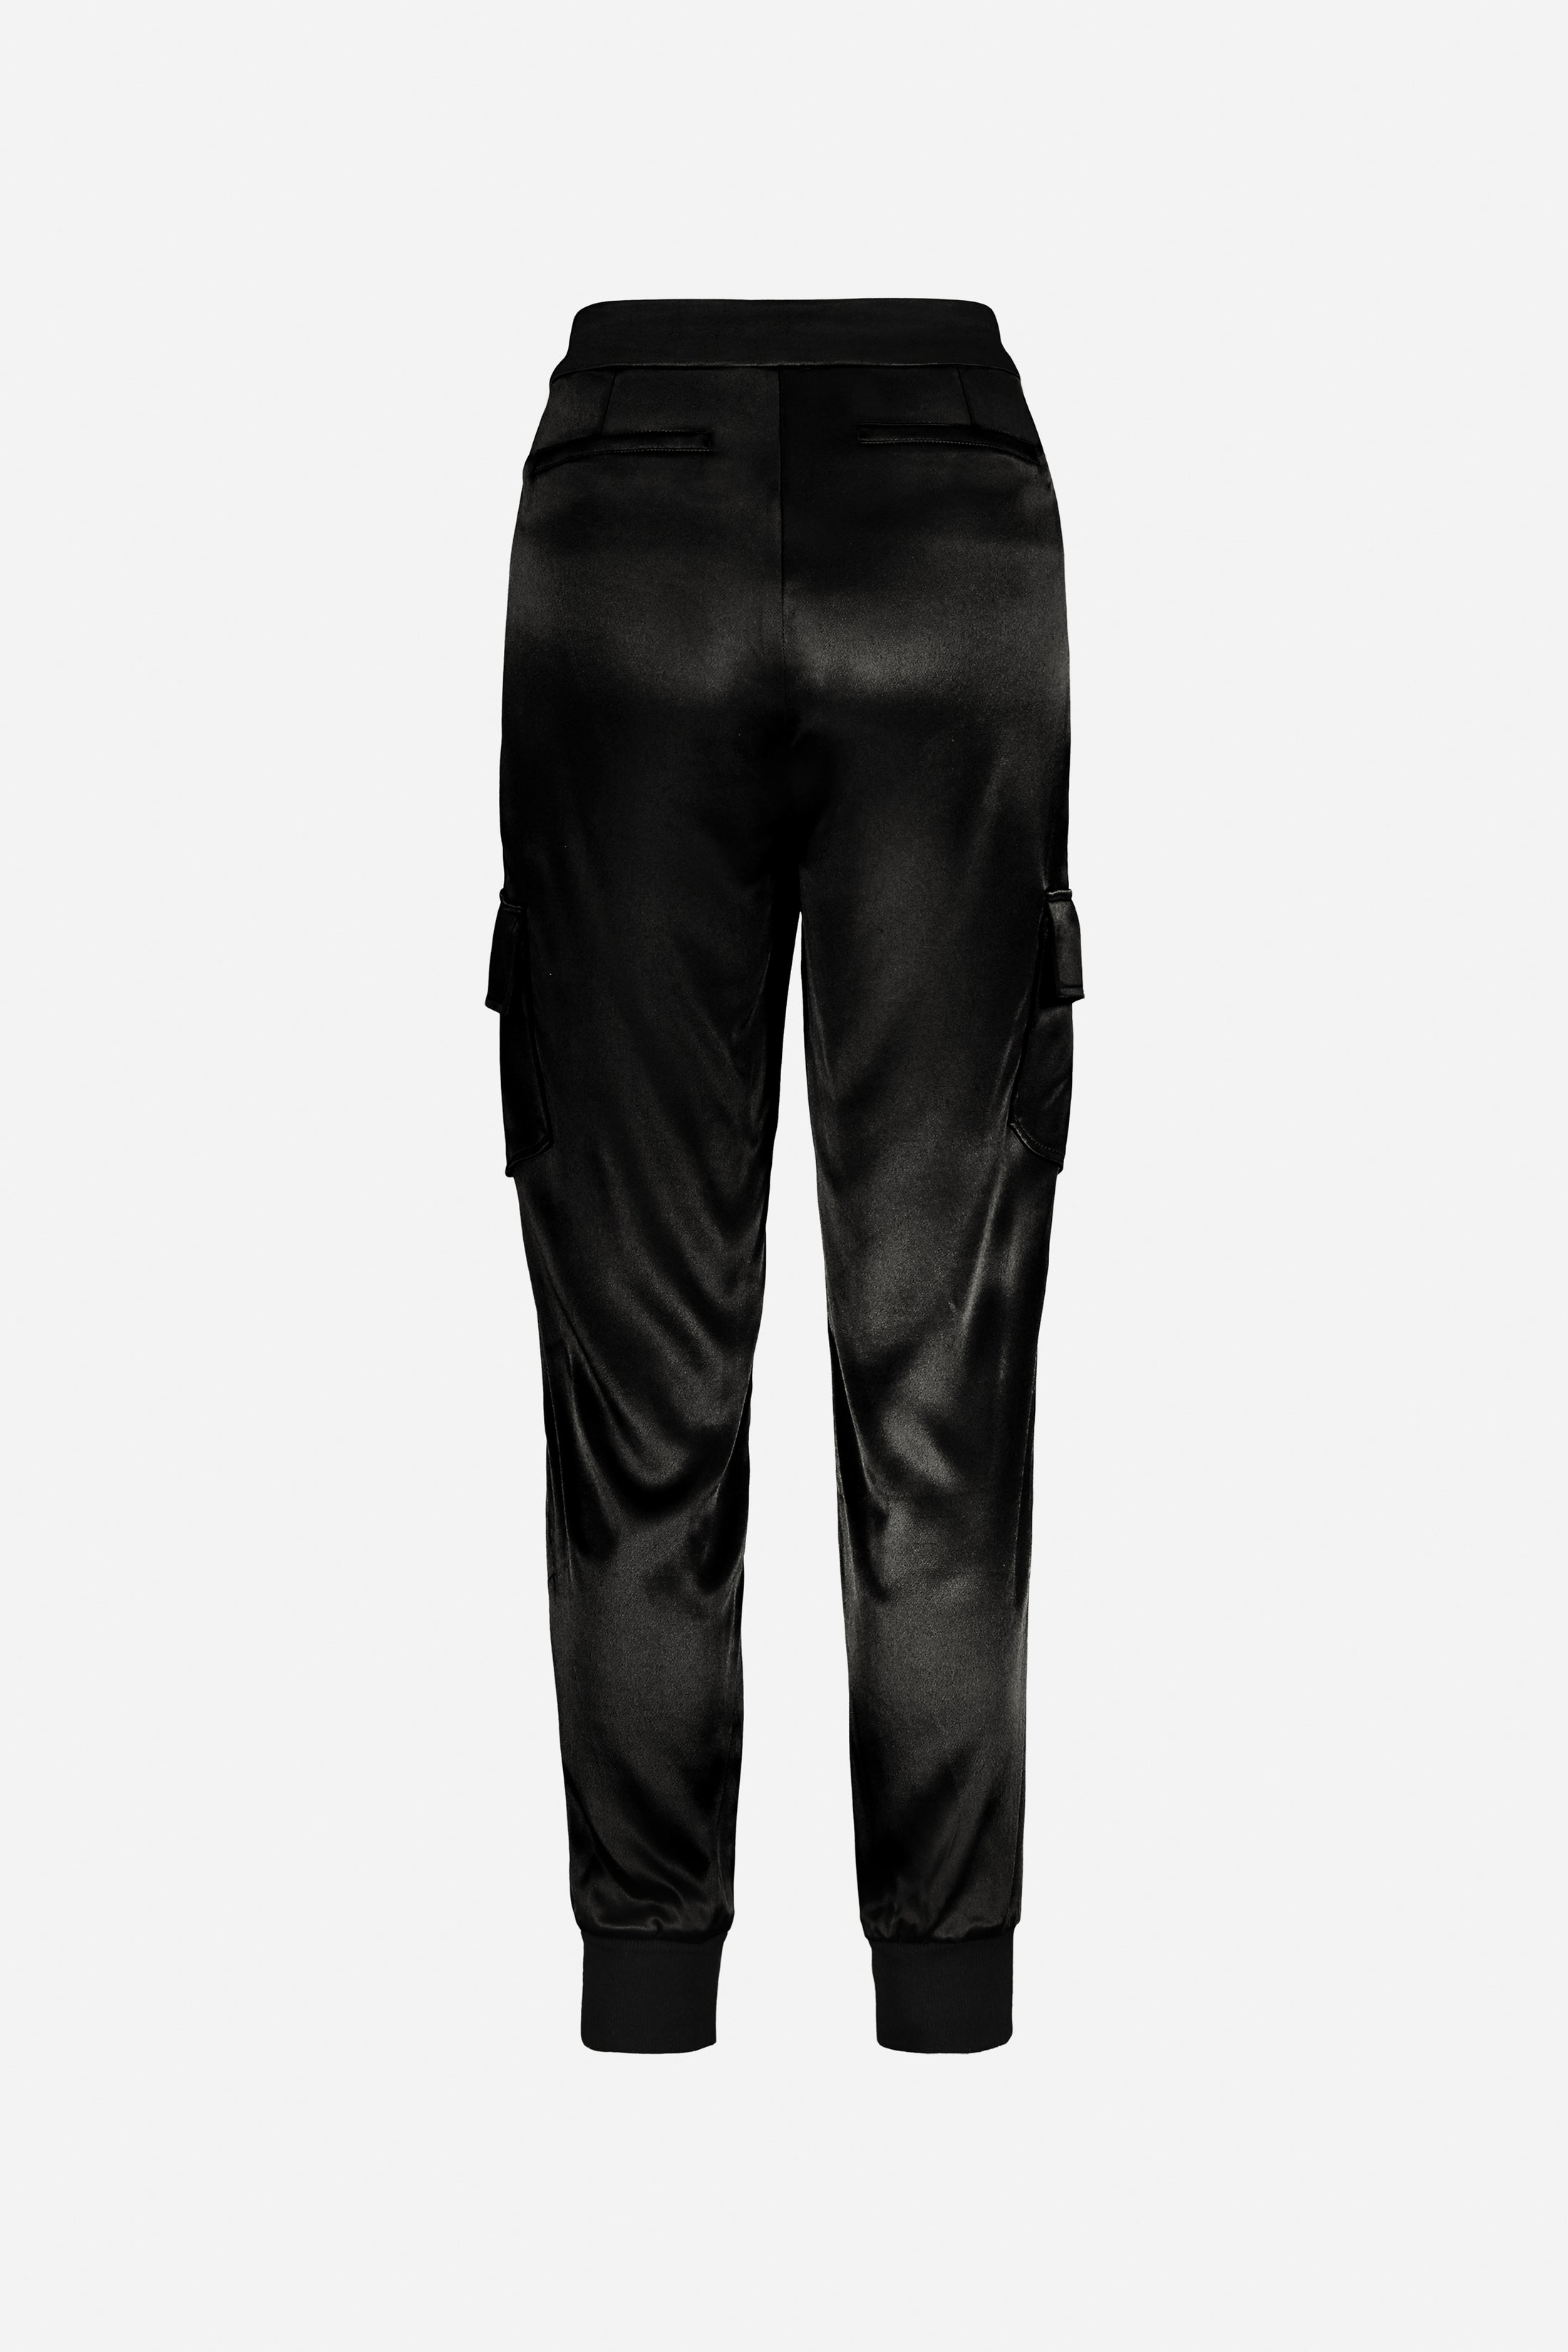 St. Germain Satin Cargo Pant